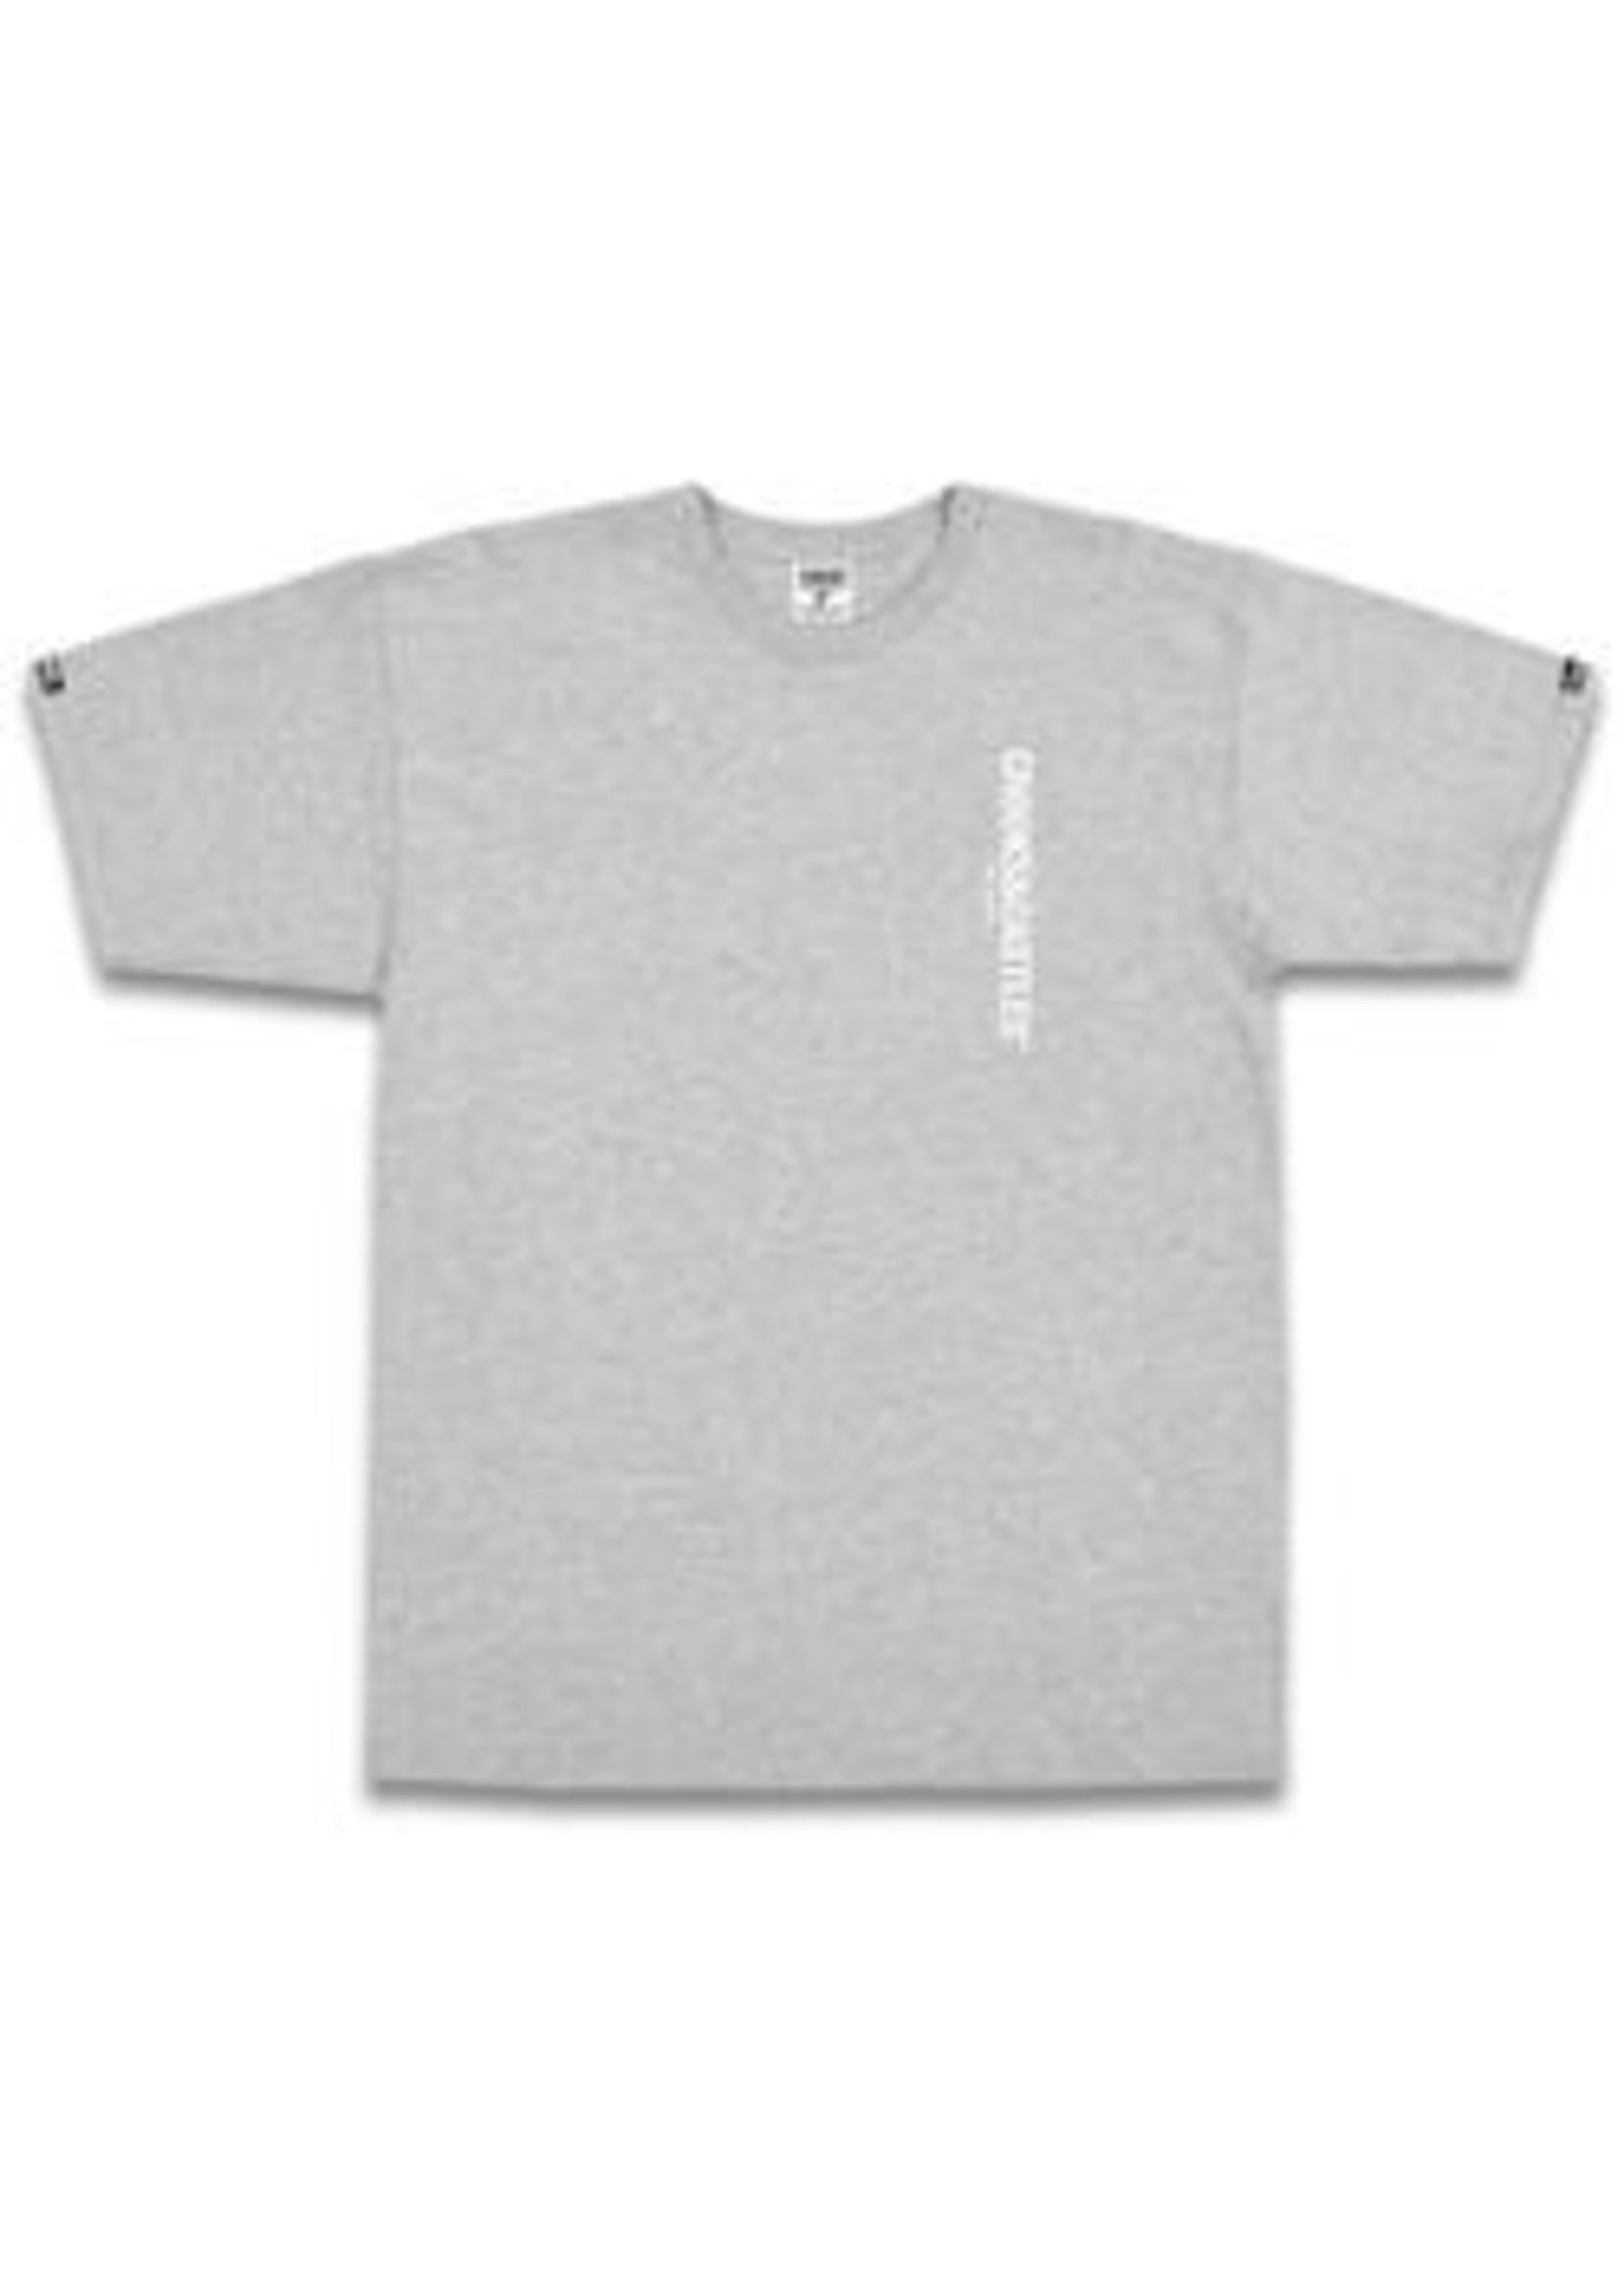 Crooks & Castles VERTICAL CRKS SS TEE L1970700-2